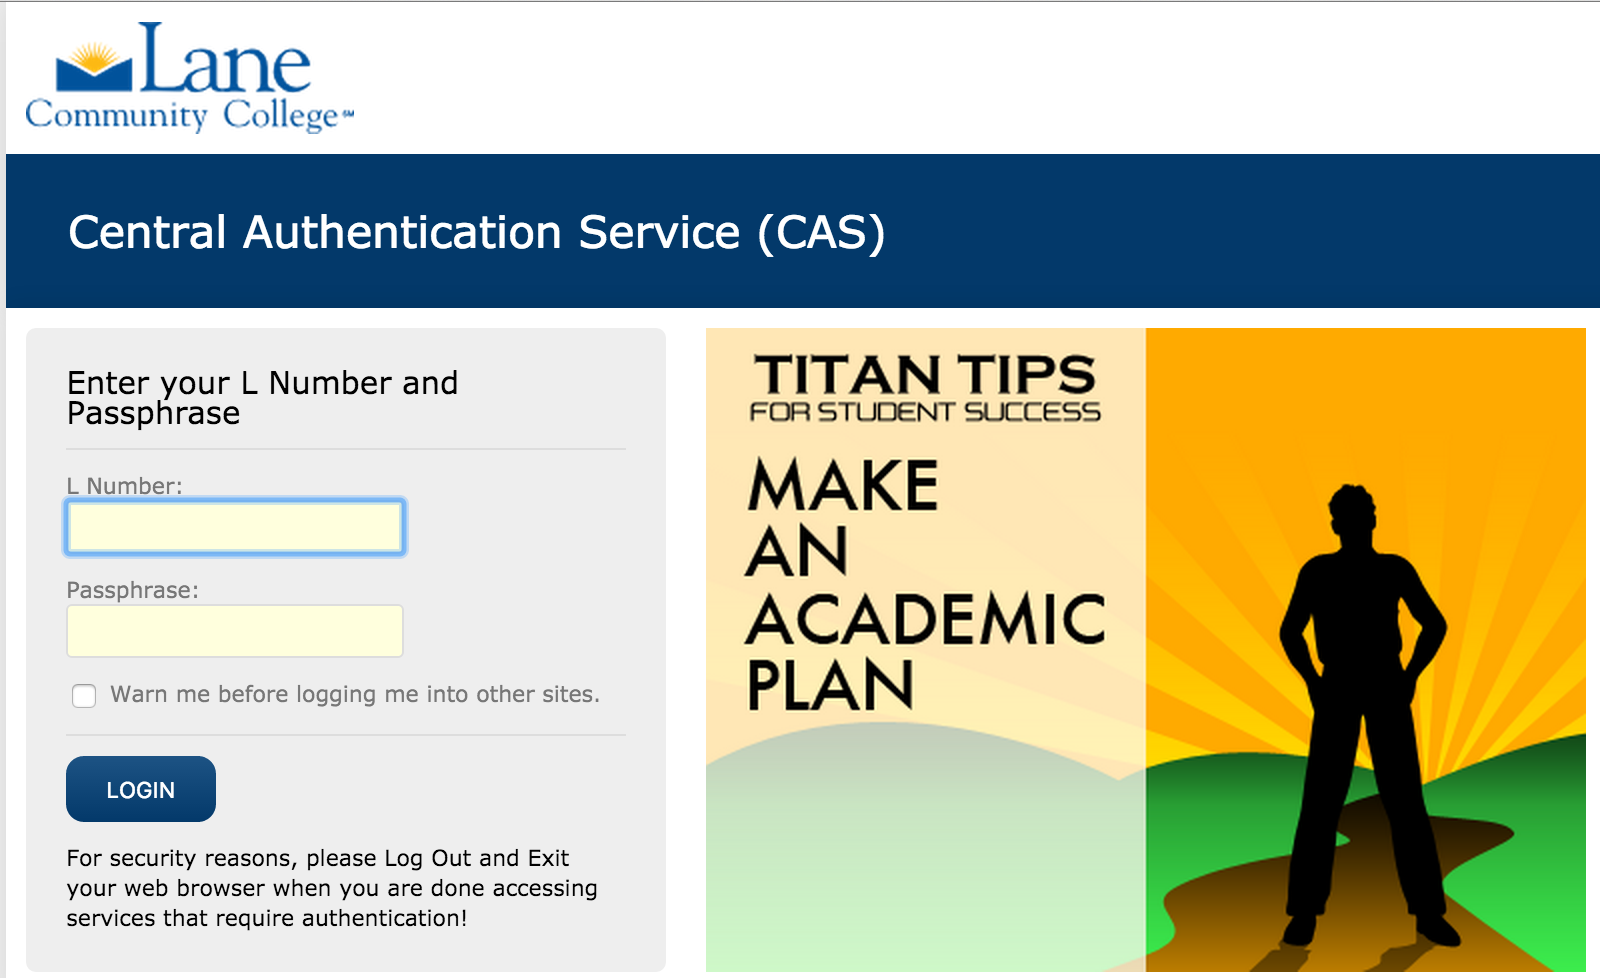 Screenshot of the CAS login screen